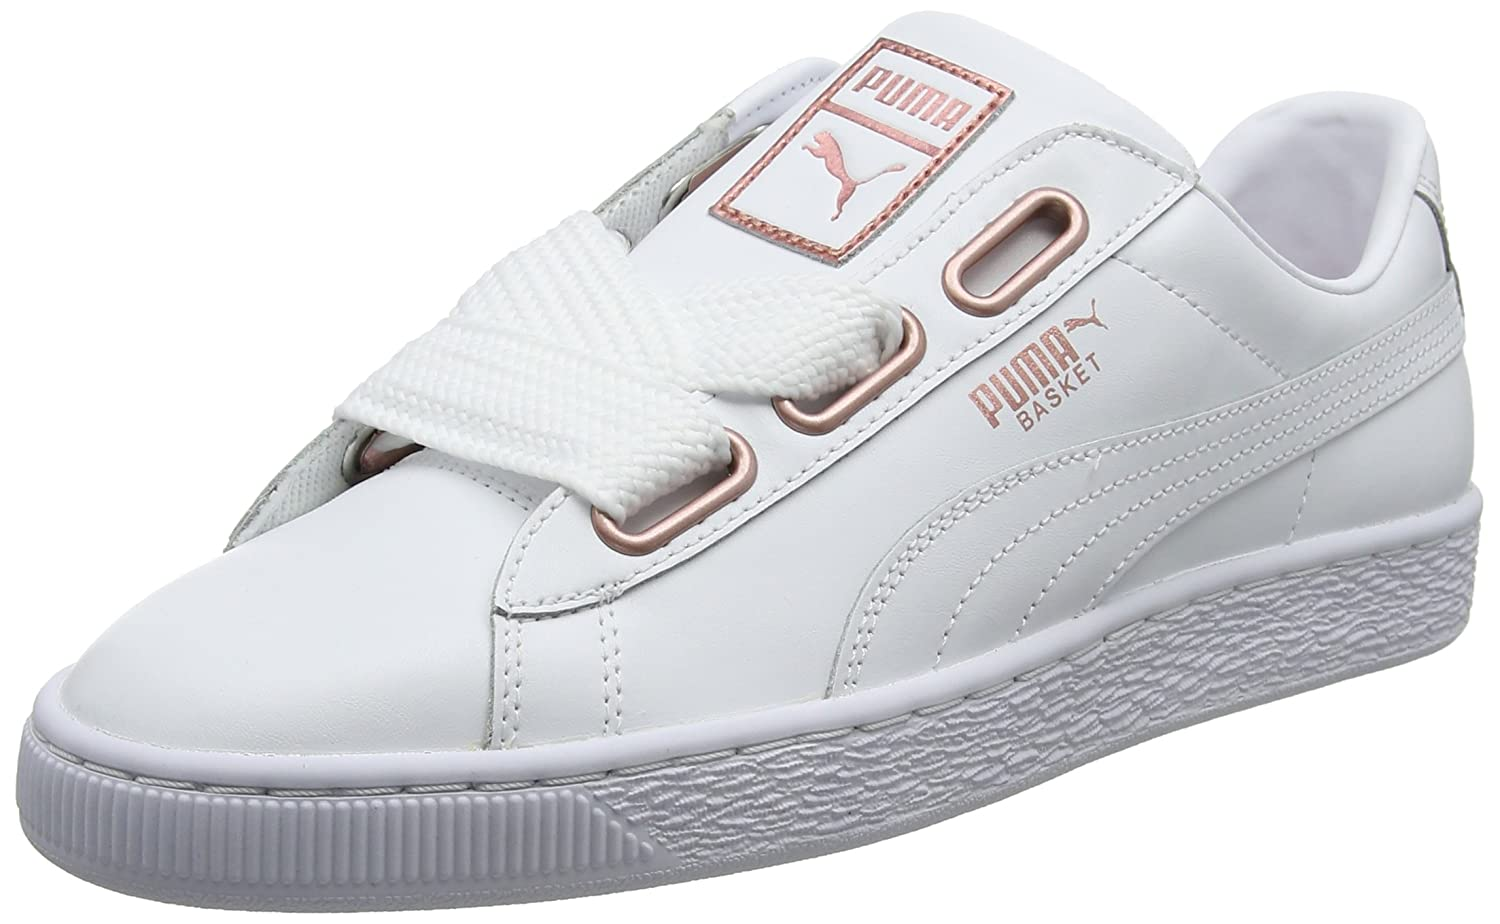 Puma Women s Basket Heart Leather WN s Low-Top Sneakers White-Rose Gold 1125fd340